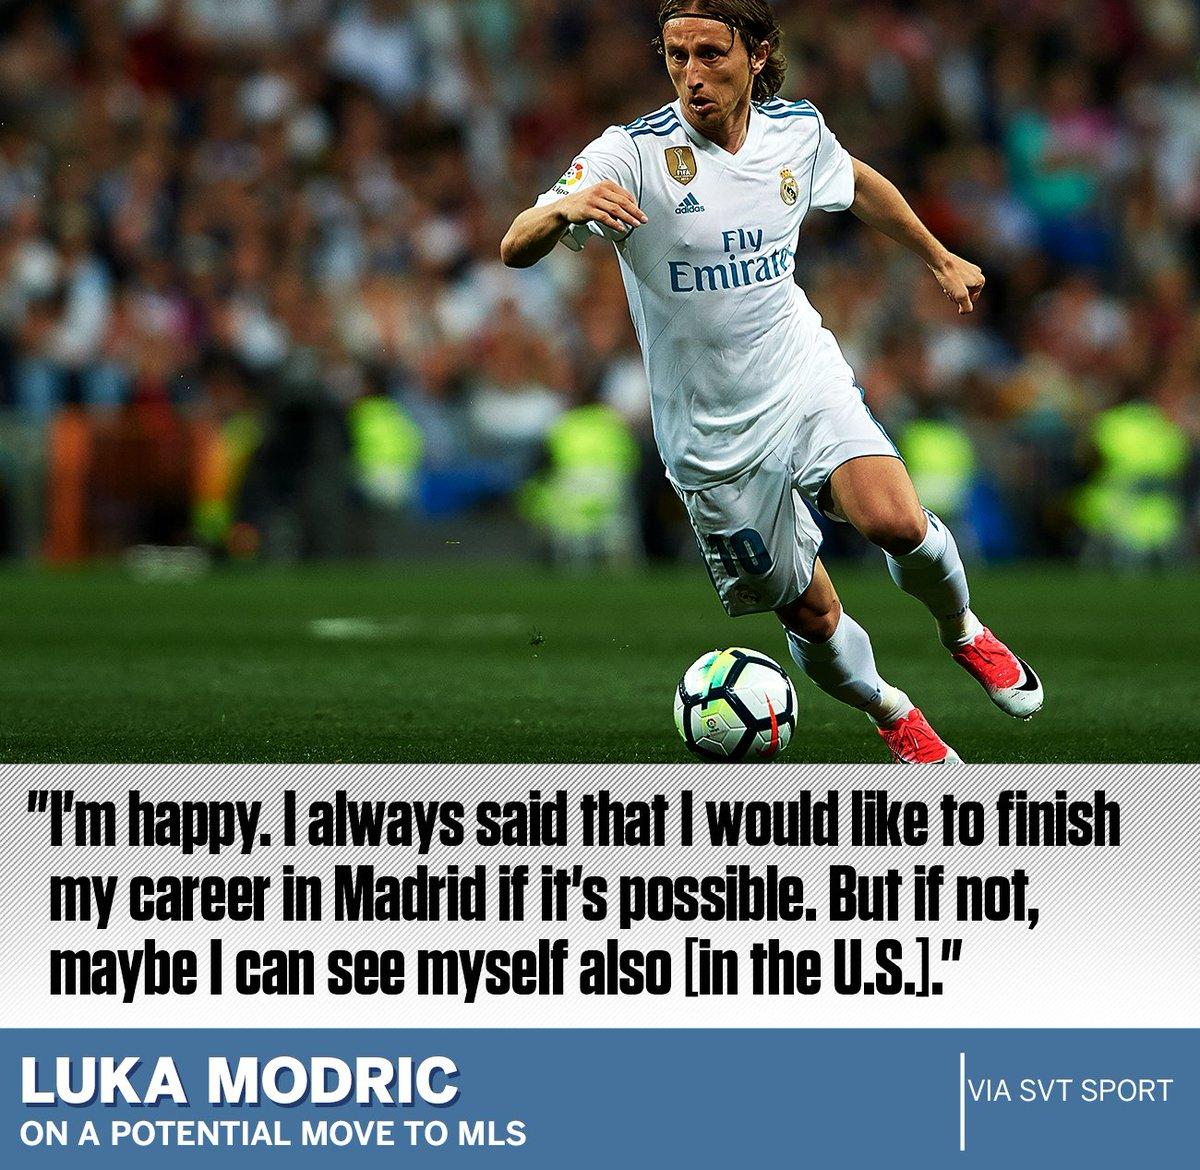 Espn Fc On Twitter Could Luka Modric Be The Next Big Name To Move